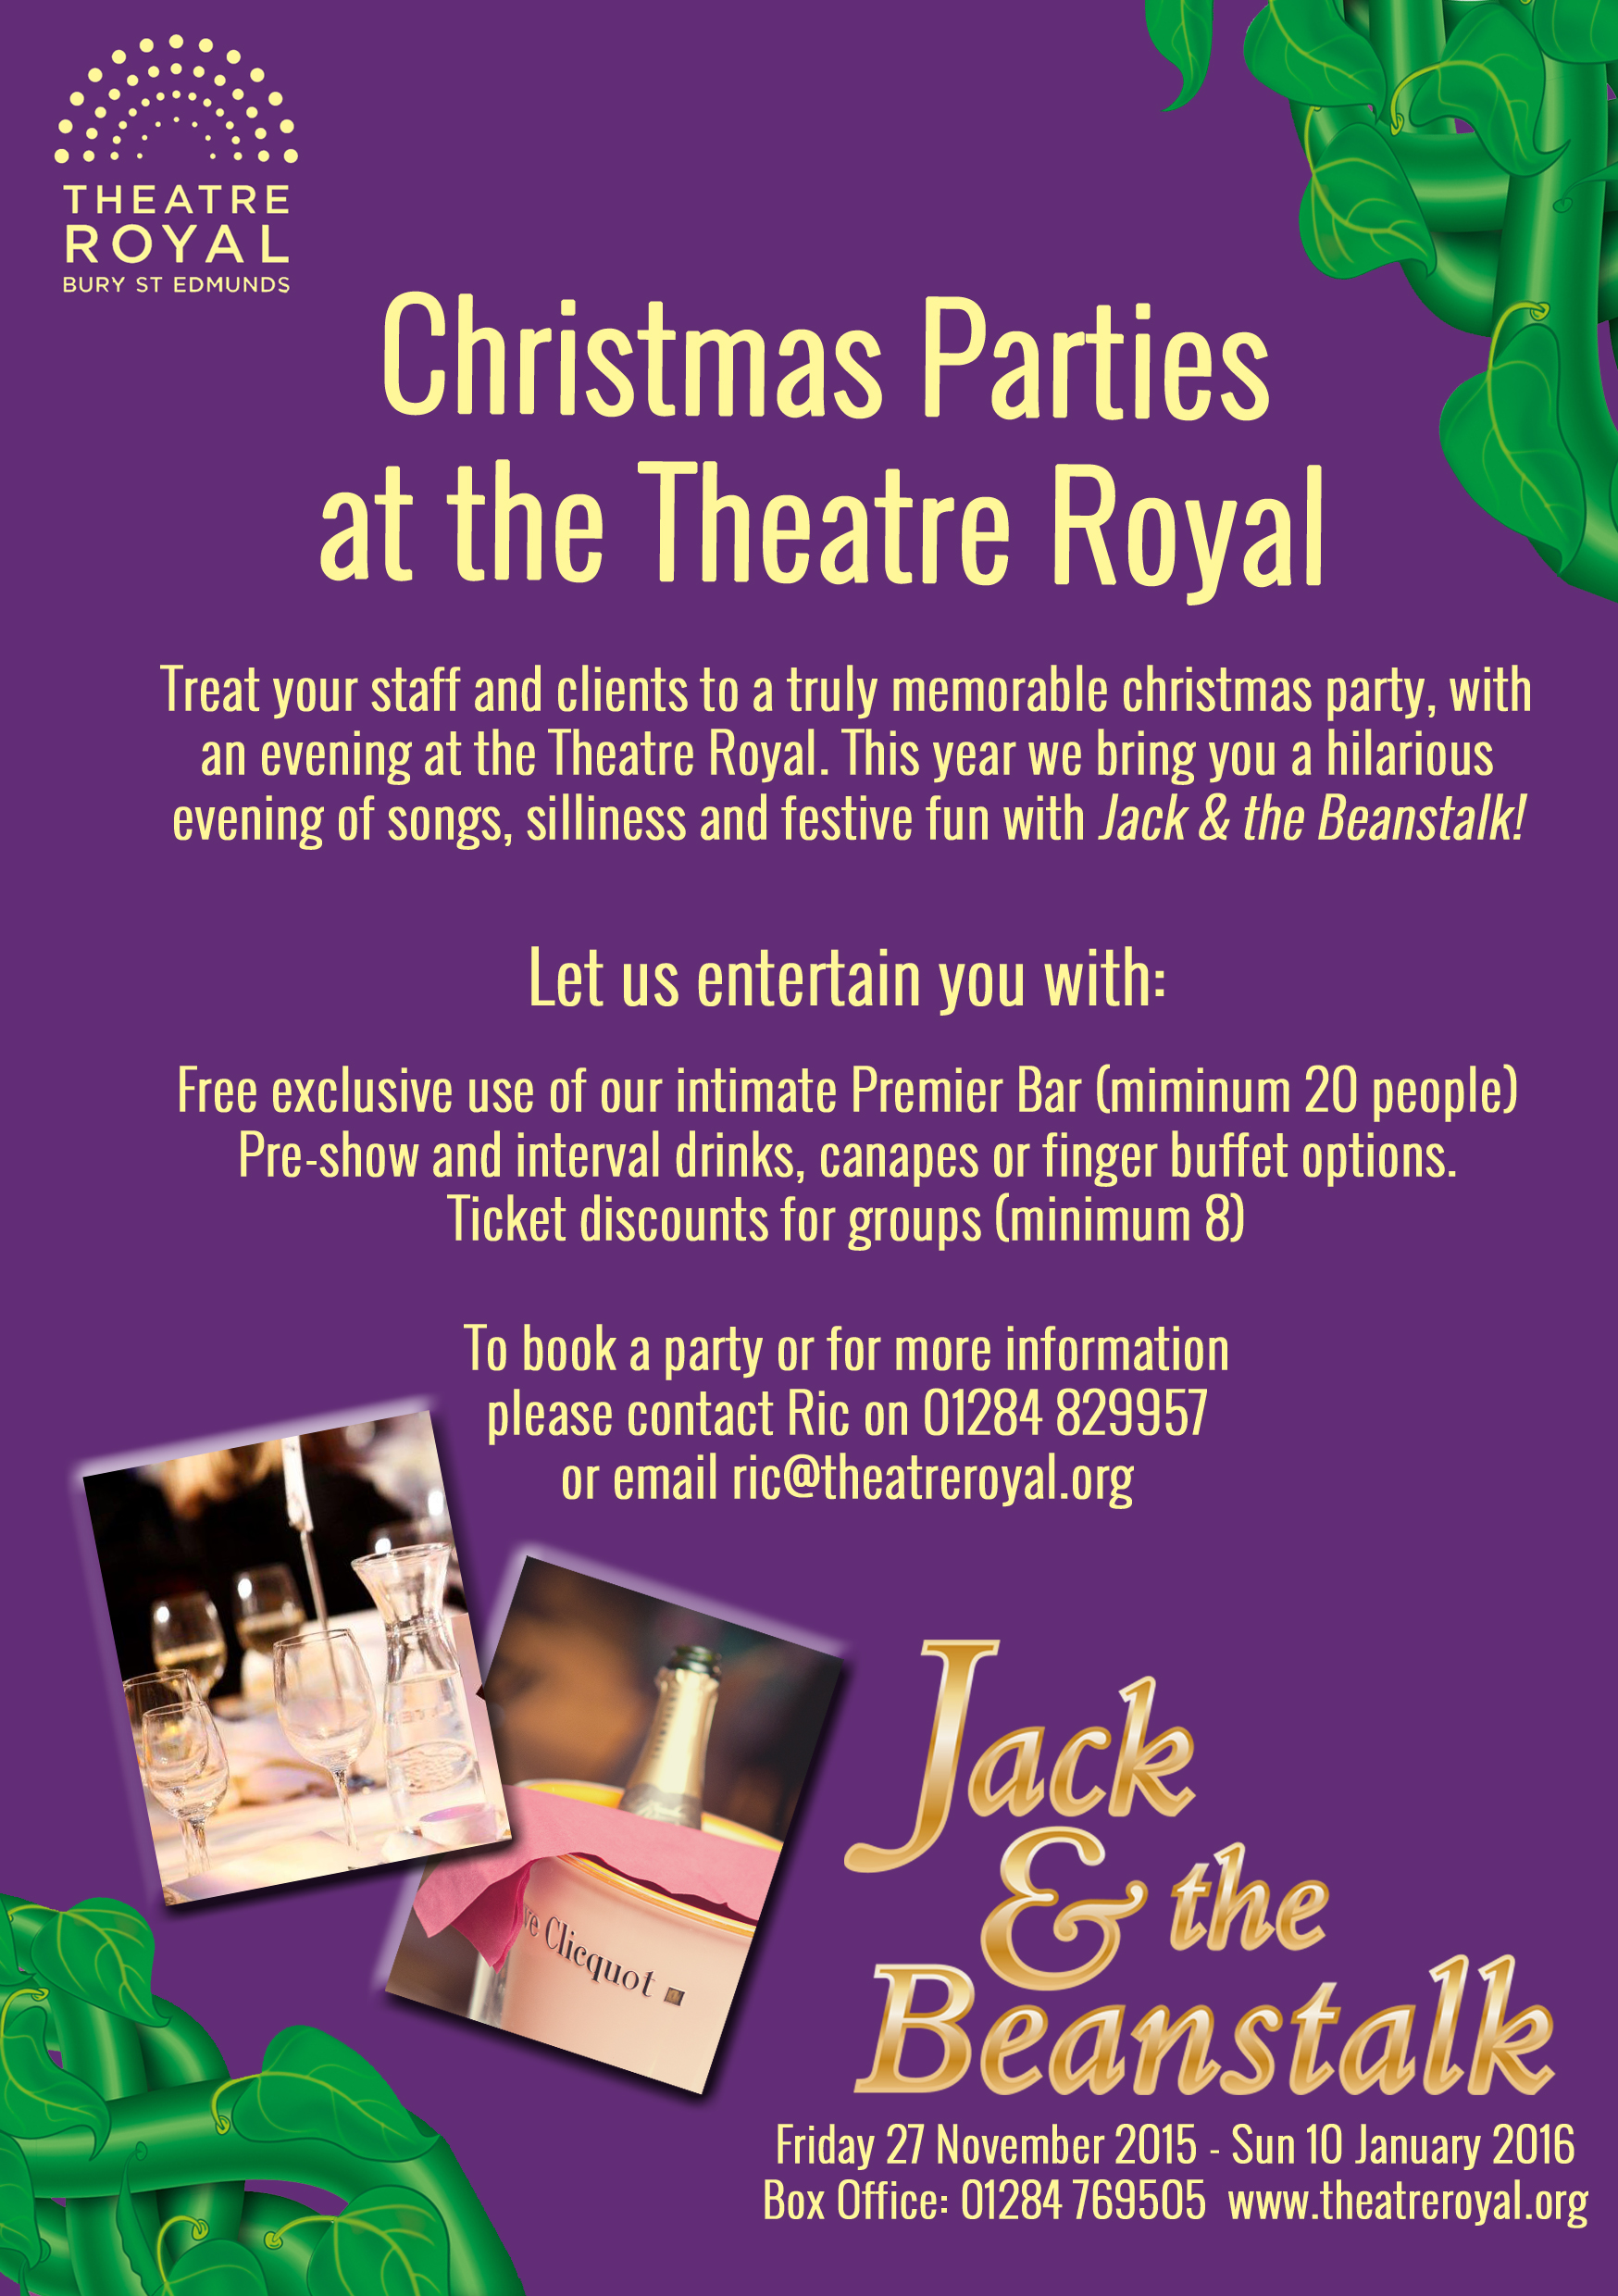 Christmas Parties at the Theatre Royal - Theatre Royal